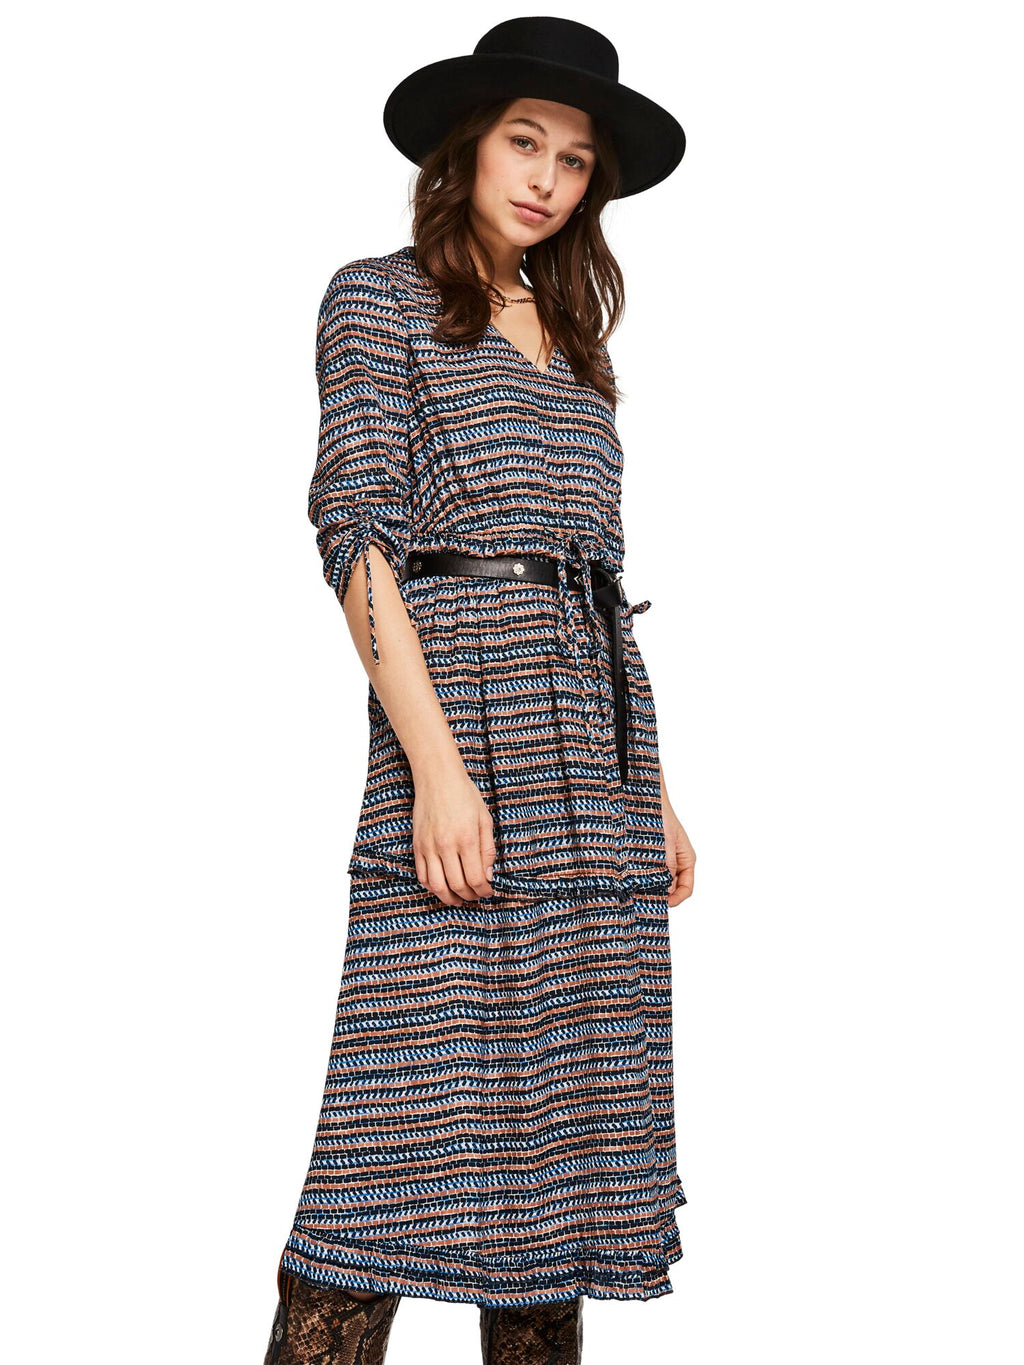 Buy Printed Midi Dress from SCOTCH AND SODA at PAYA boutique